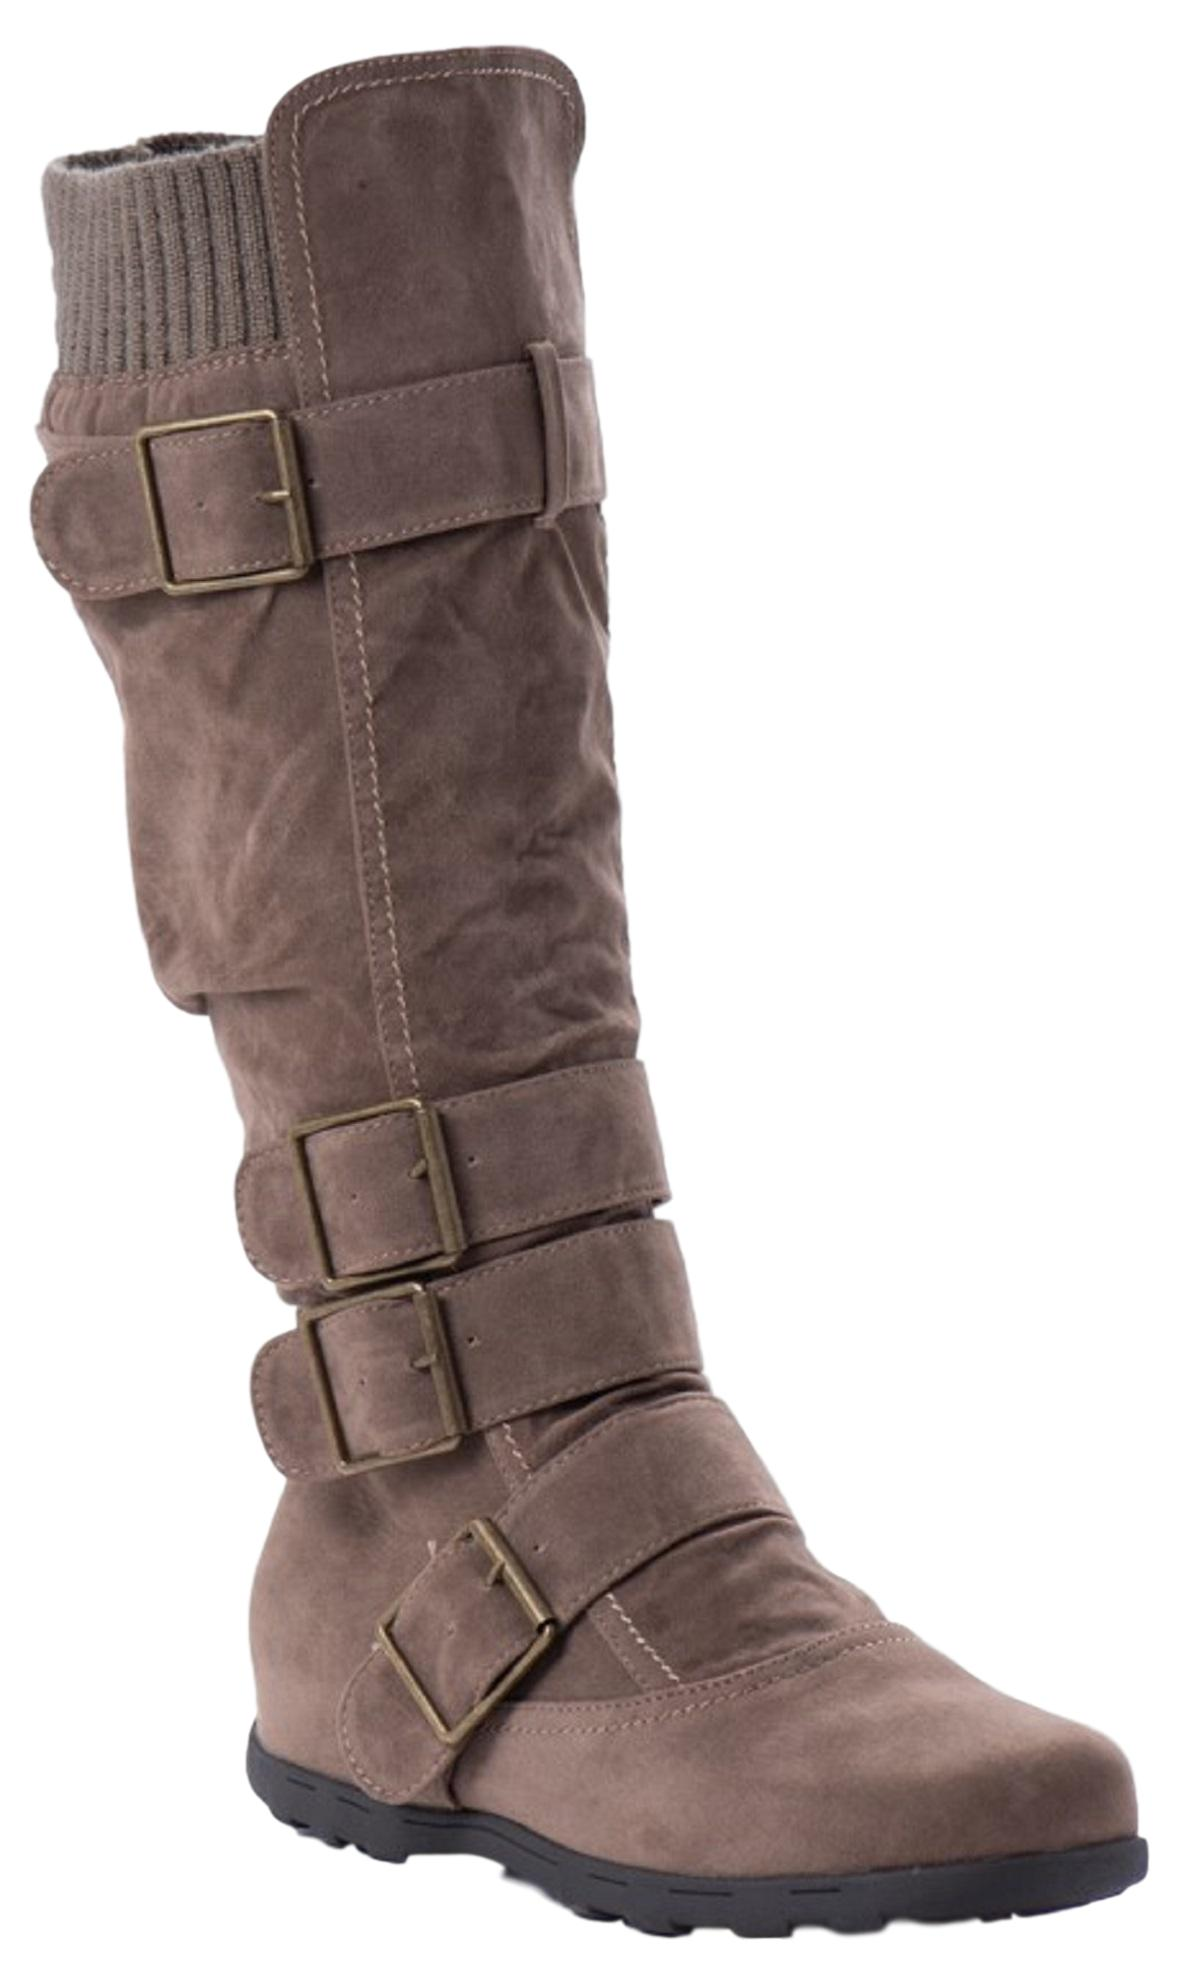 search for latest favorable price where to buy Elma-02 Women Knee High Buckle Side Zipper Flat Combat Moto Boots Taupe